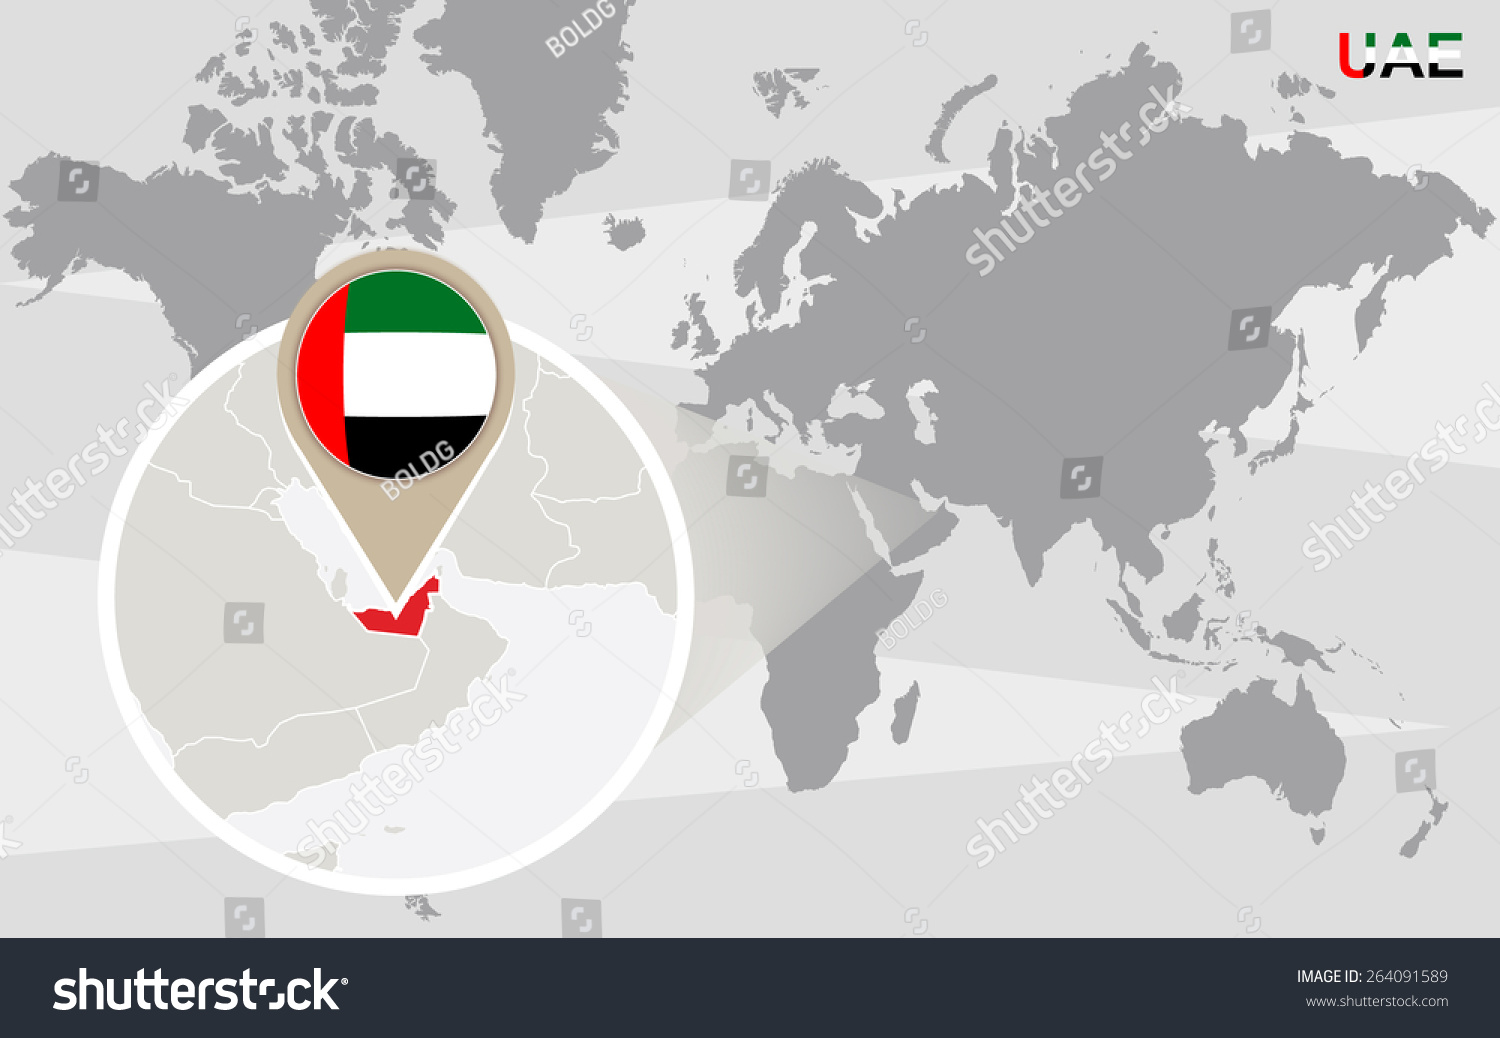 World map magnified united arab emirates stock vector 264091589 world map with magnified united arab emirates uae flag and map sciox Gallery